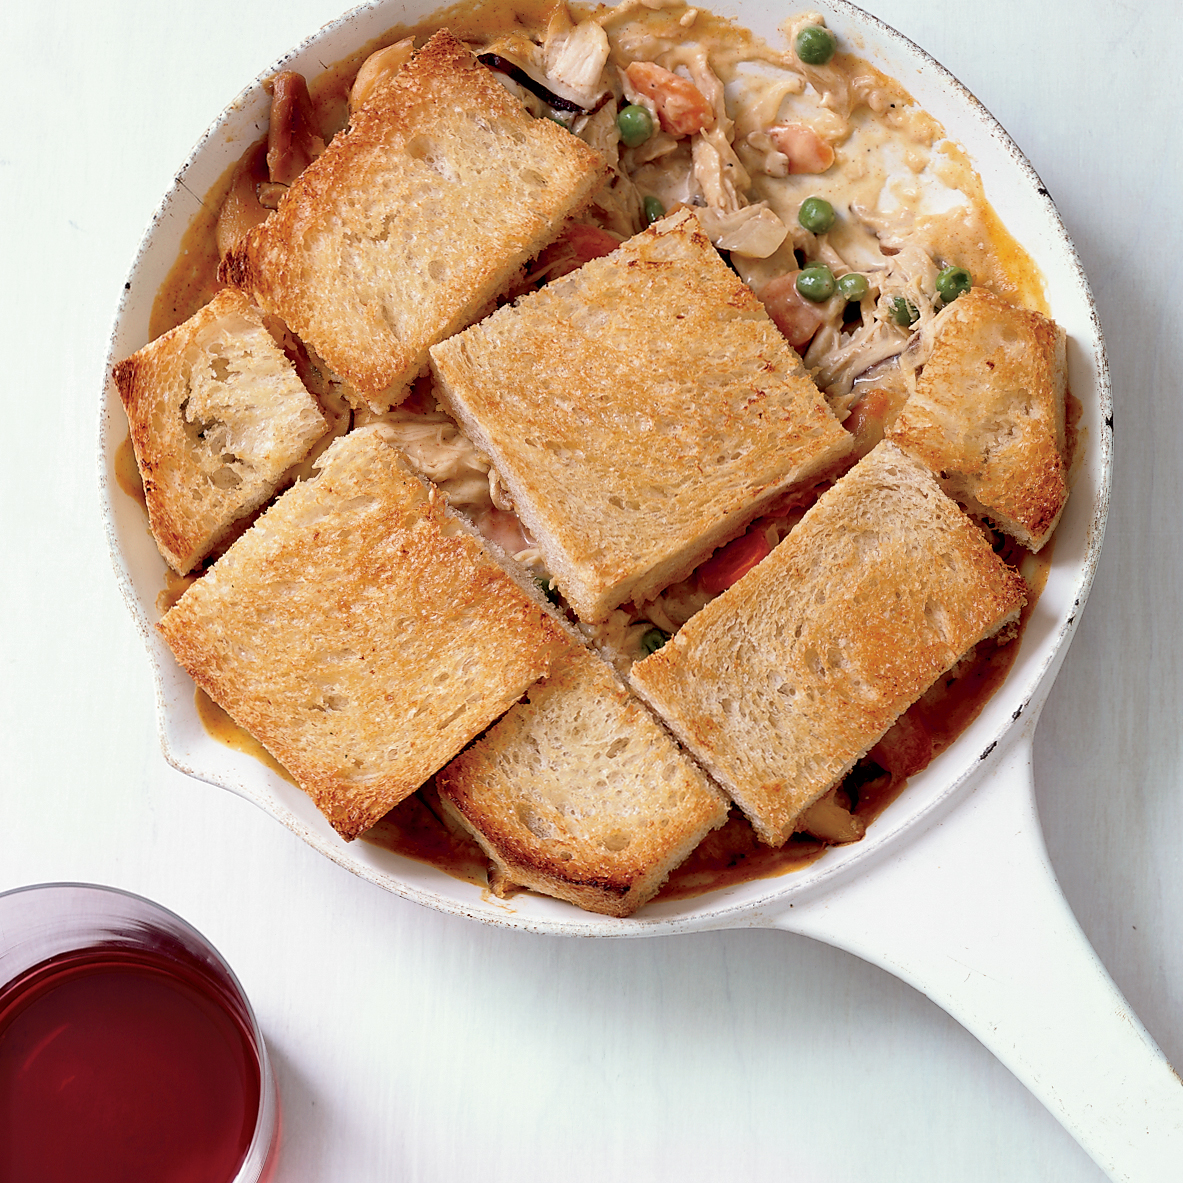 Skillet Chicken-and-Mushroom Potpie